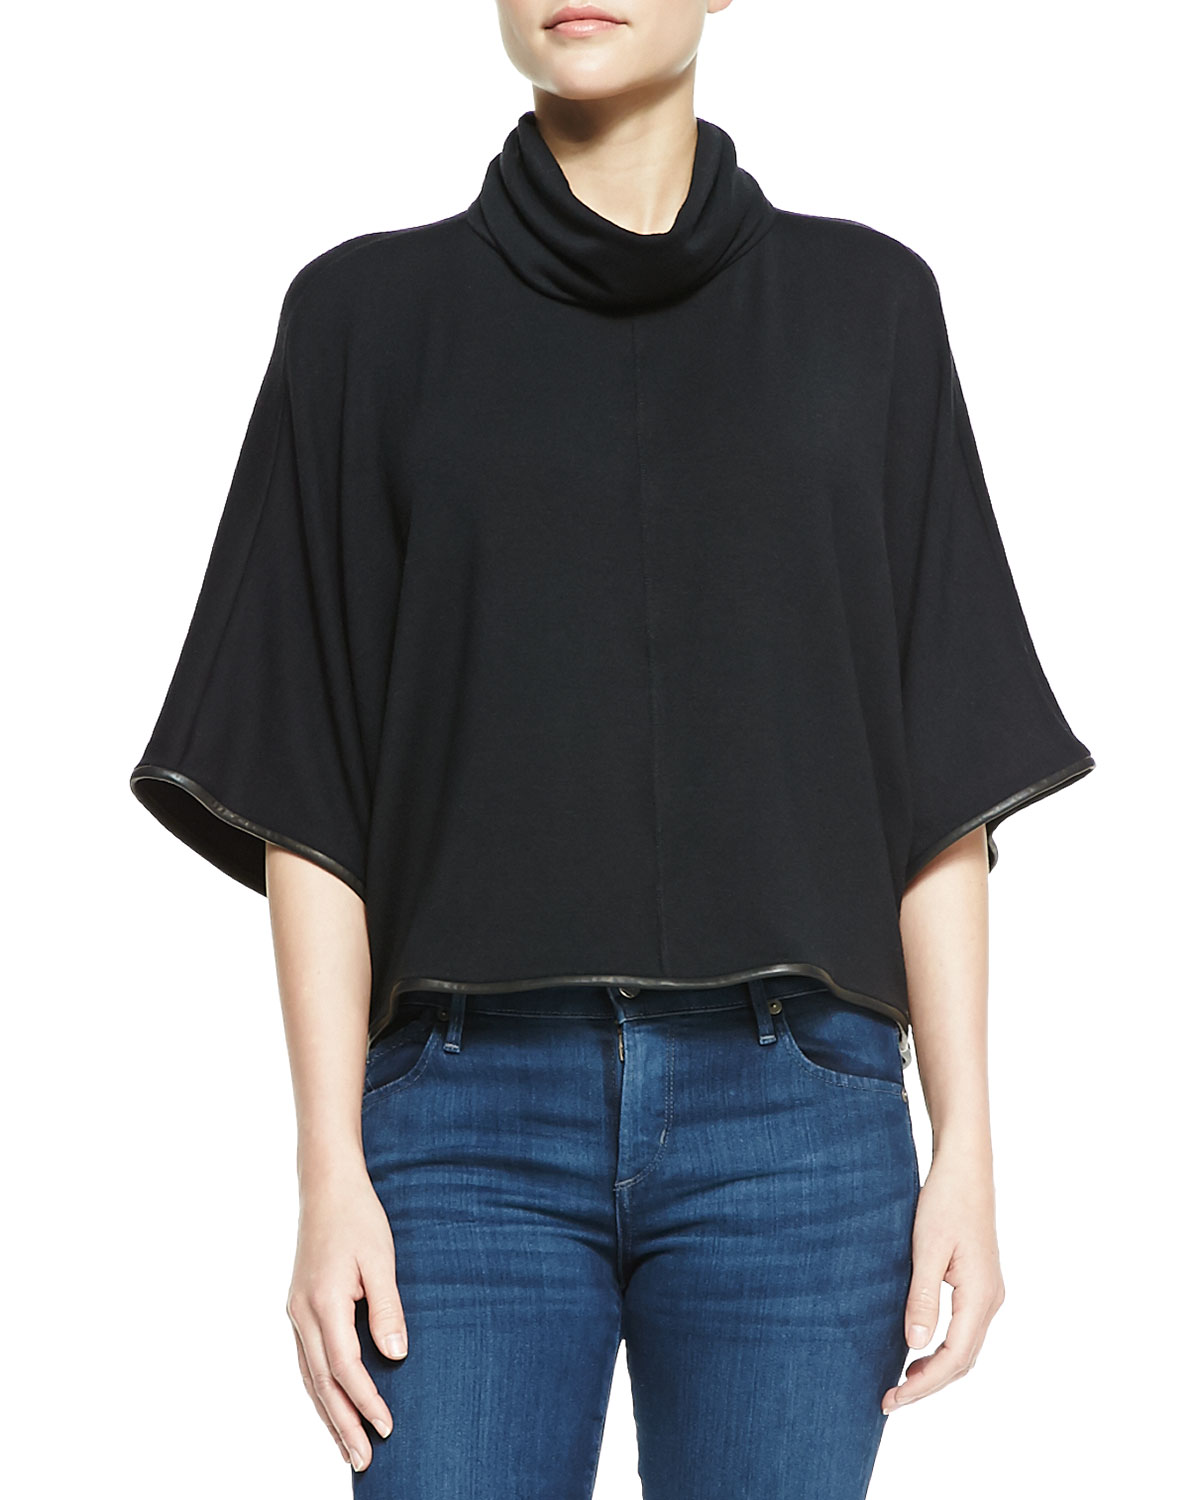 Womens Cowl Turtleneck Top With Leather Piping   Alice + Olivia   Black (SMALL)